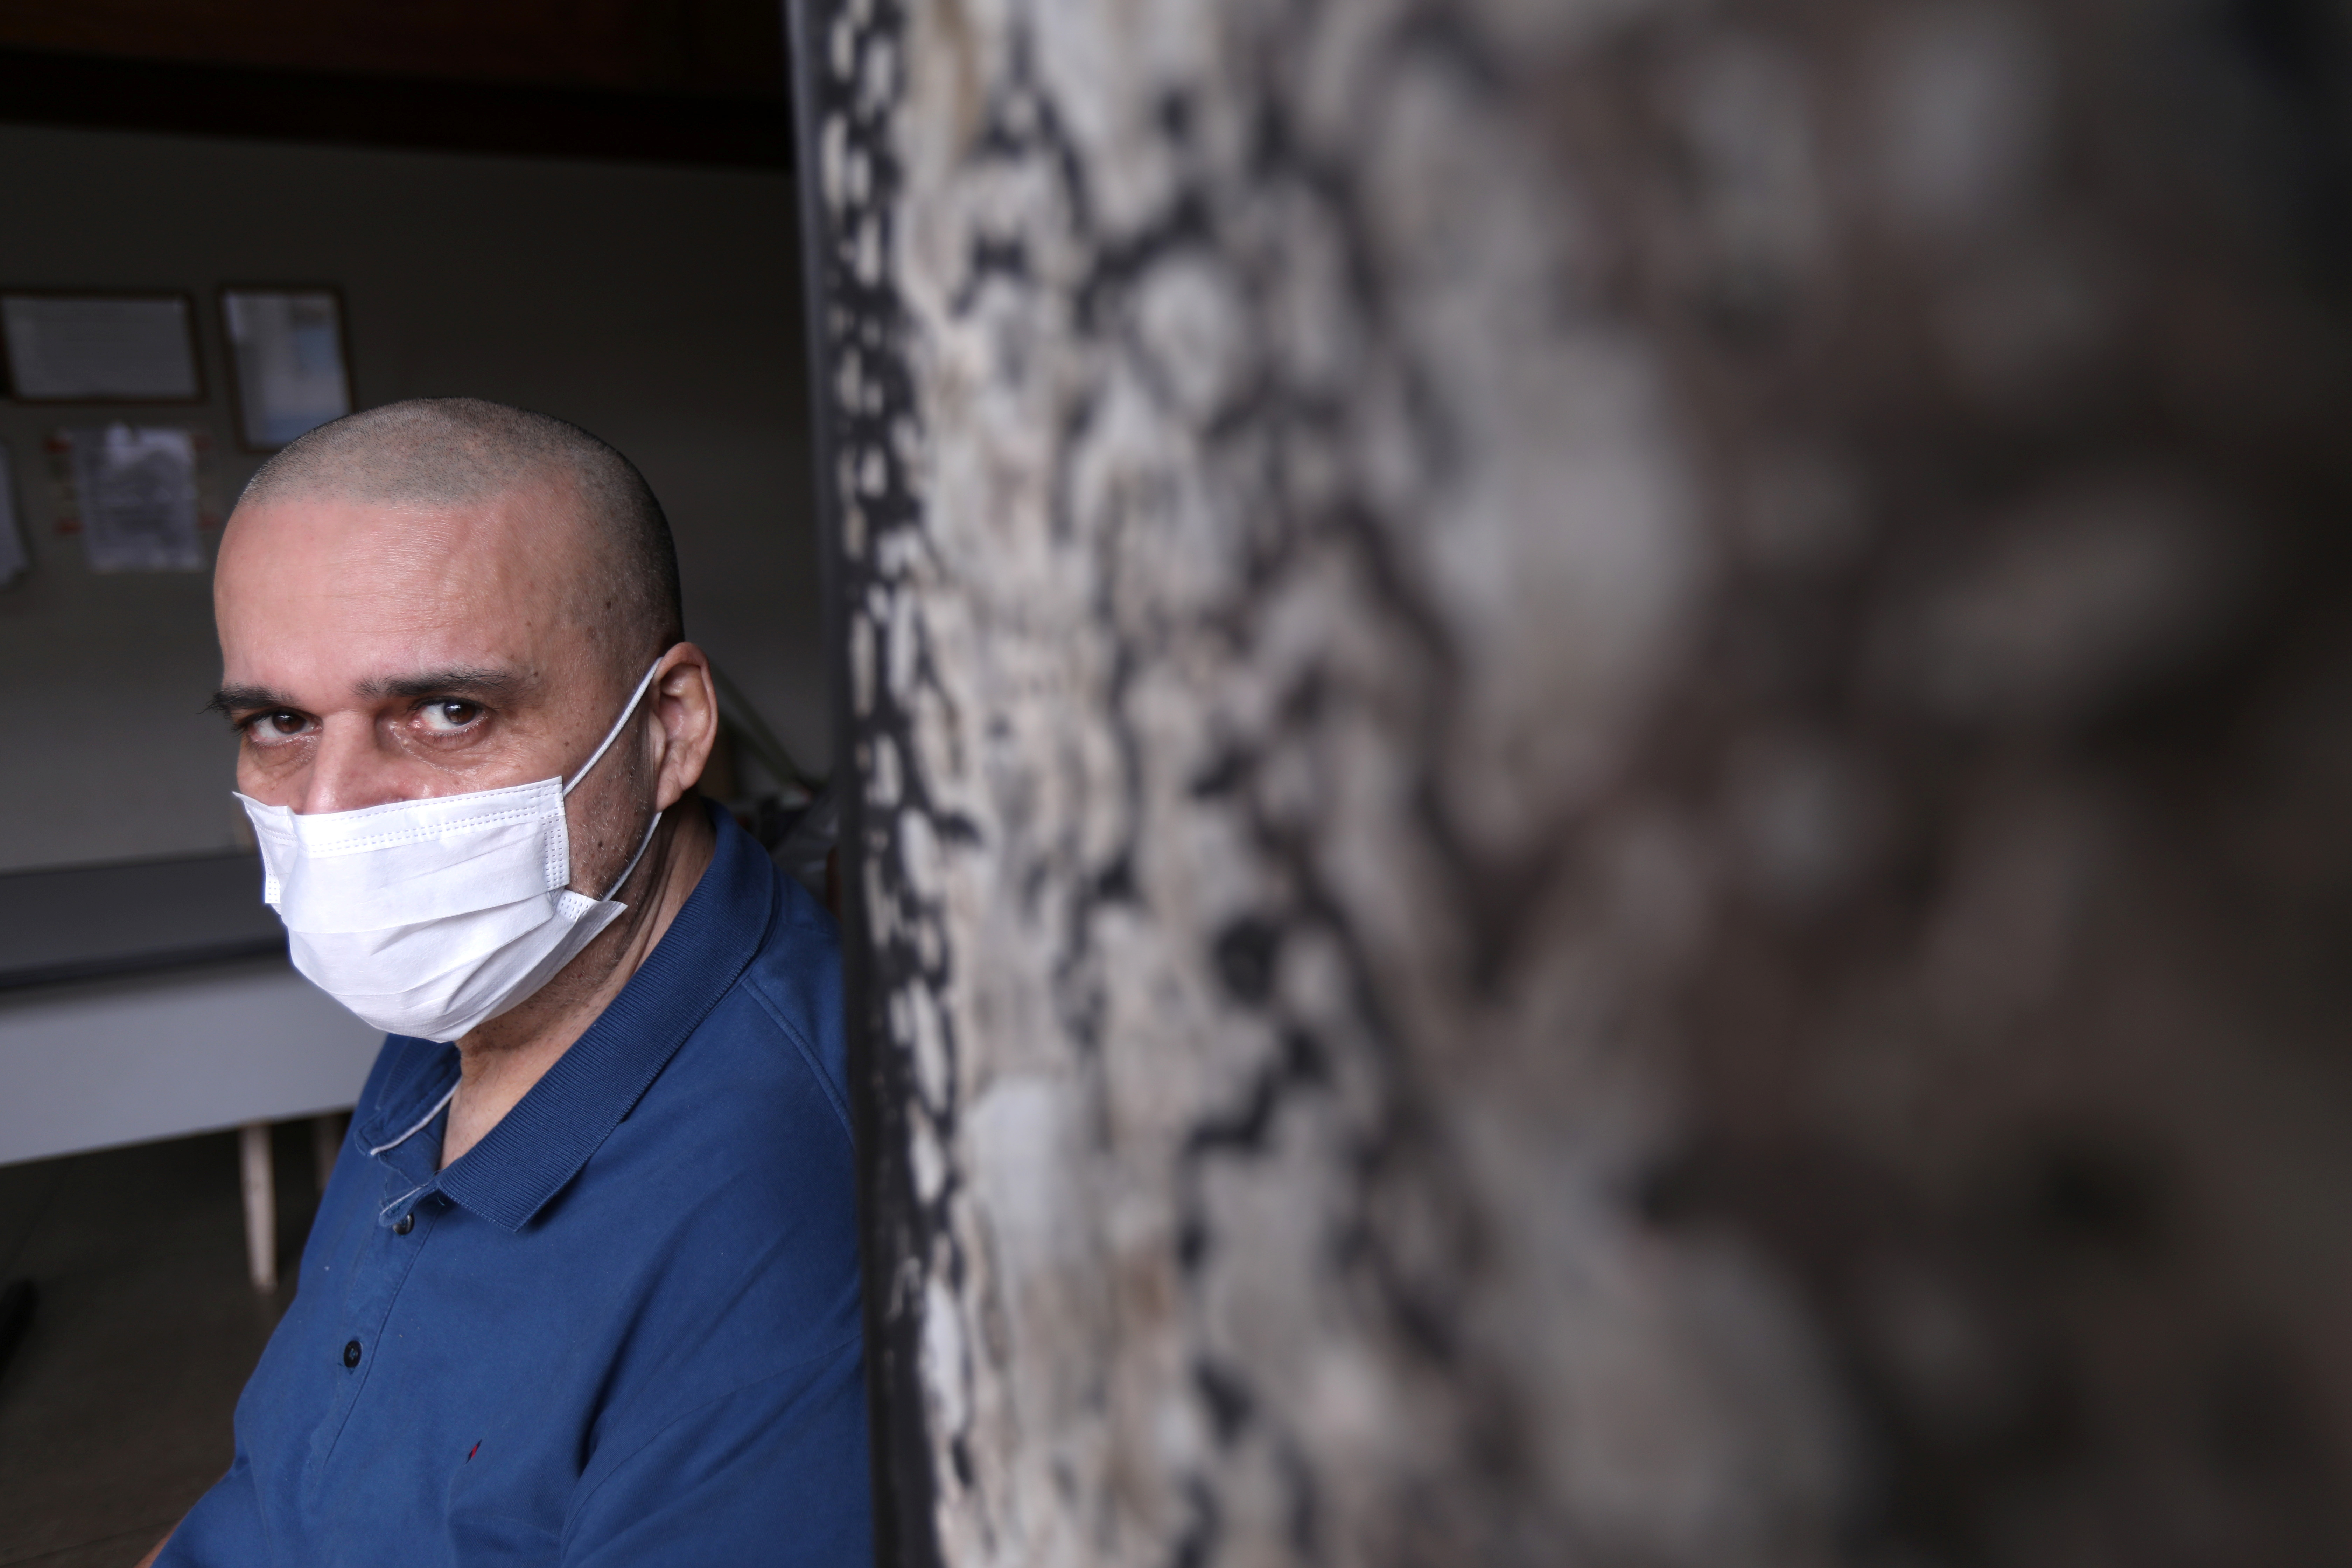 Jose Antonio Arantes, a local newspaper editor and radio host, who had his house set on fire by a supporter of Brazil's President Jair Bolsonaro, poses for a picture amid the coronavirus disease (COVID-19) pandemic in Olimpia, Sao Paulo state, Brazil, June 9, 2021. Picture taken June 9, 2021. REUTERS/Leonardo Benassatto